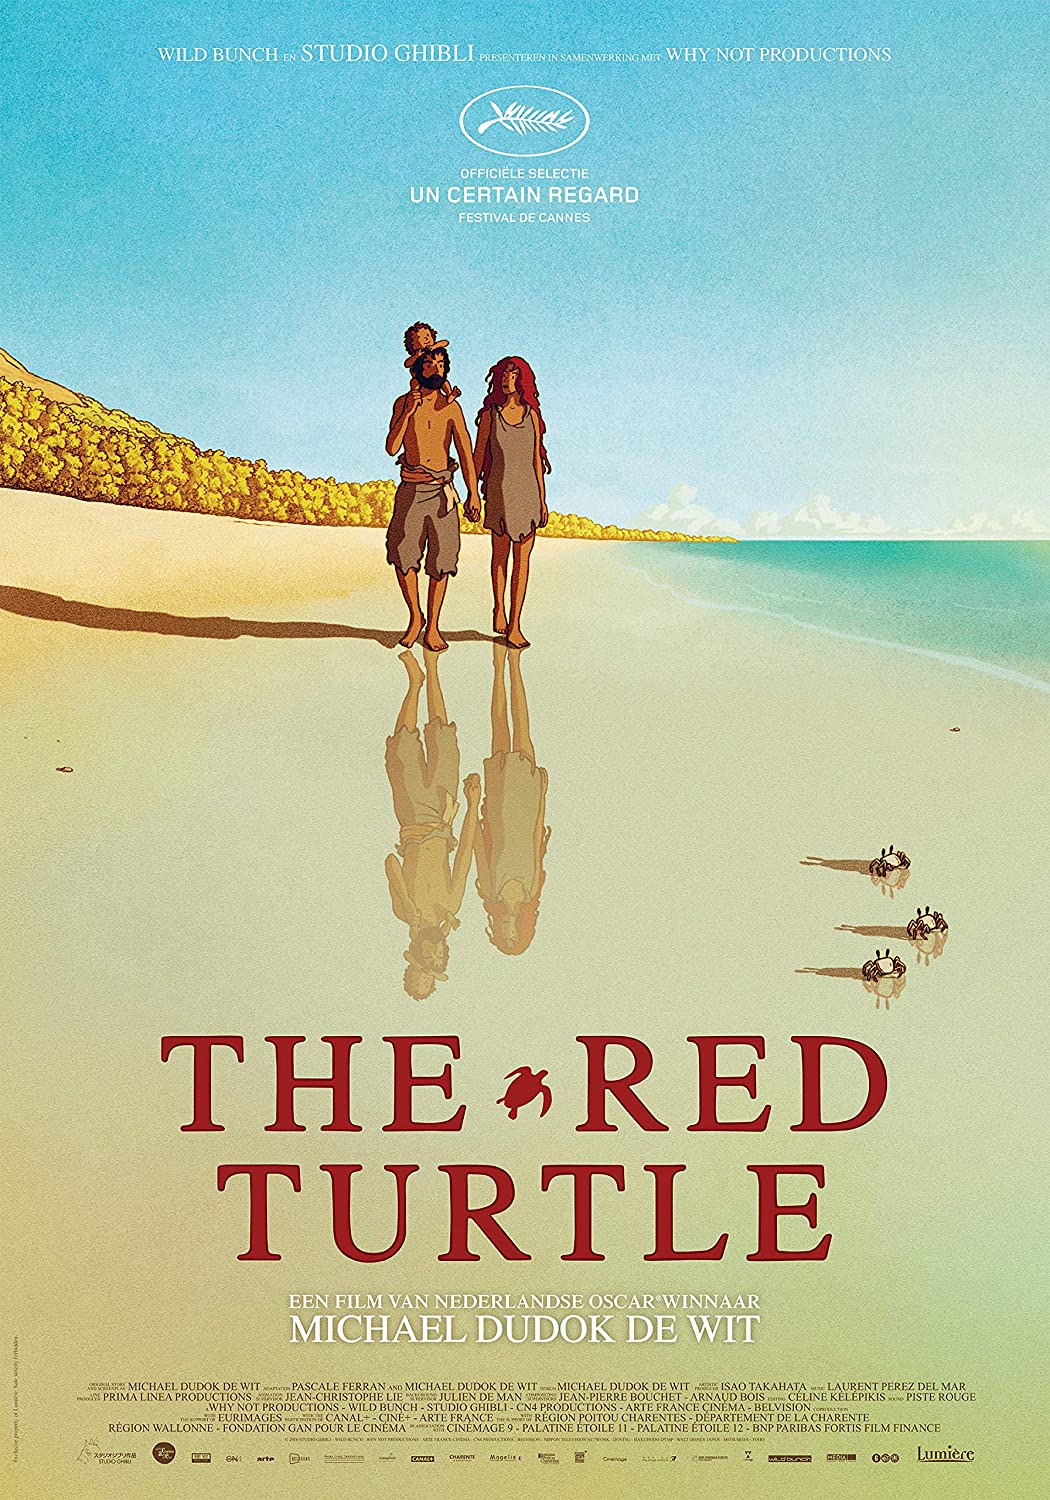 Amazon Com Newhorizon The Red Turtle Movie Poster 17 X 24 Not A Dvd Posters Prints